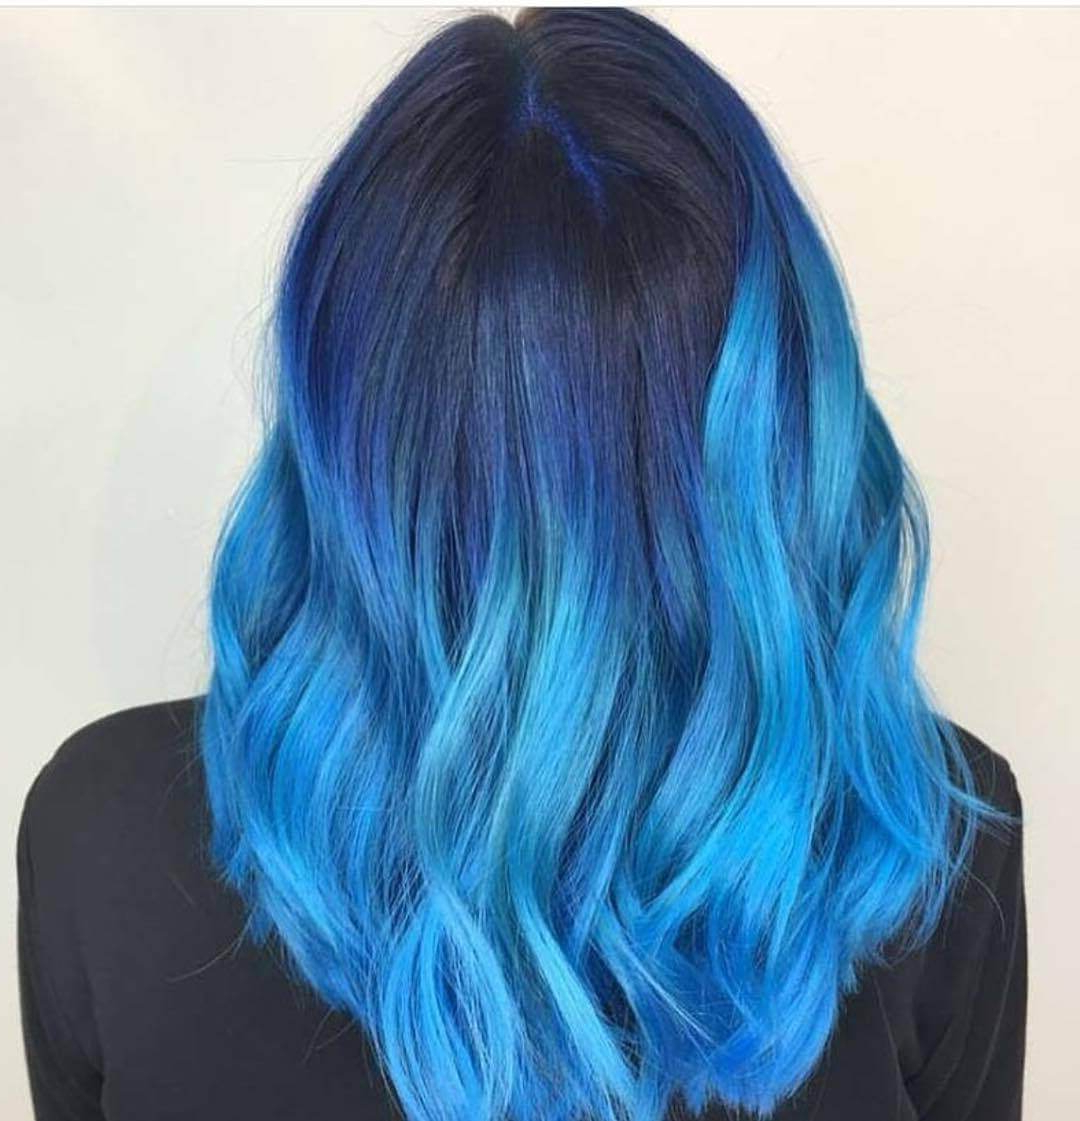 50 Magical Ways To Style Mermaid Hair For Every Hair Type With Preferred Cotton Candy Colors Blend Mermaid Braid Hairstyles (View 5 of 20)